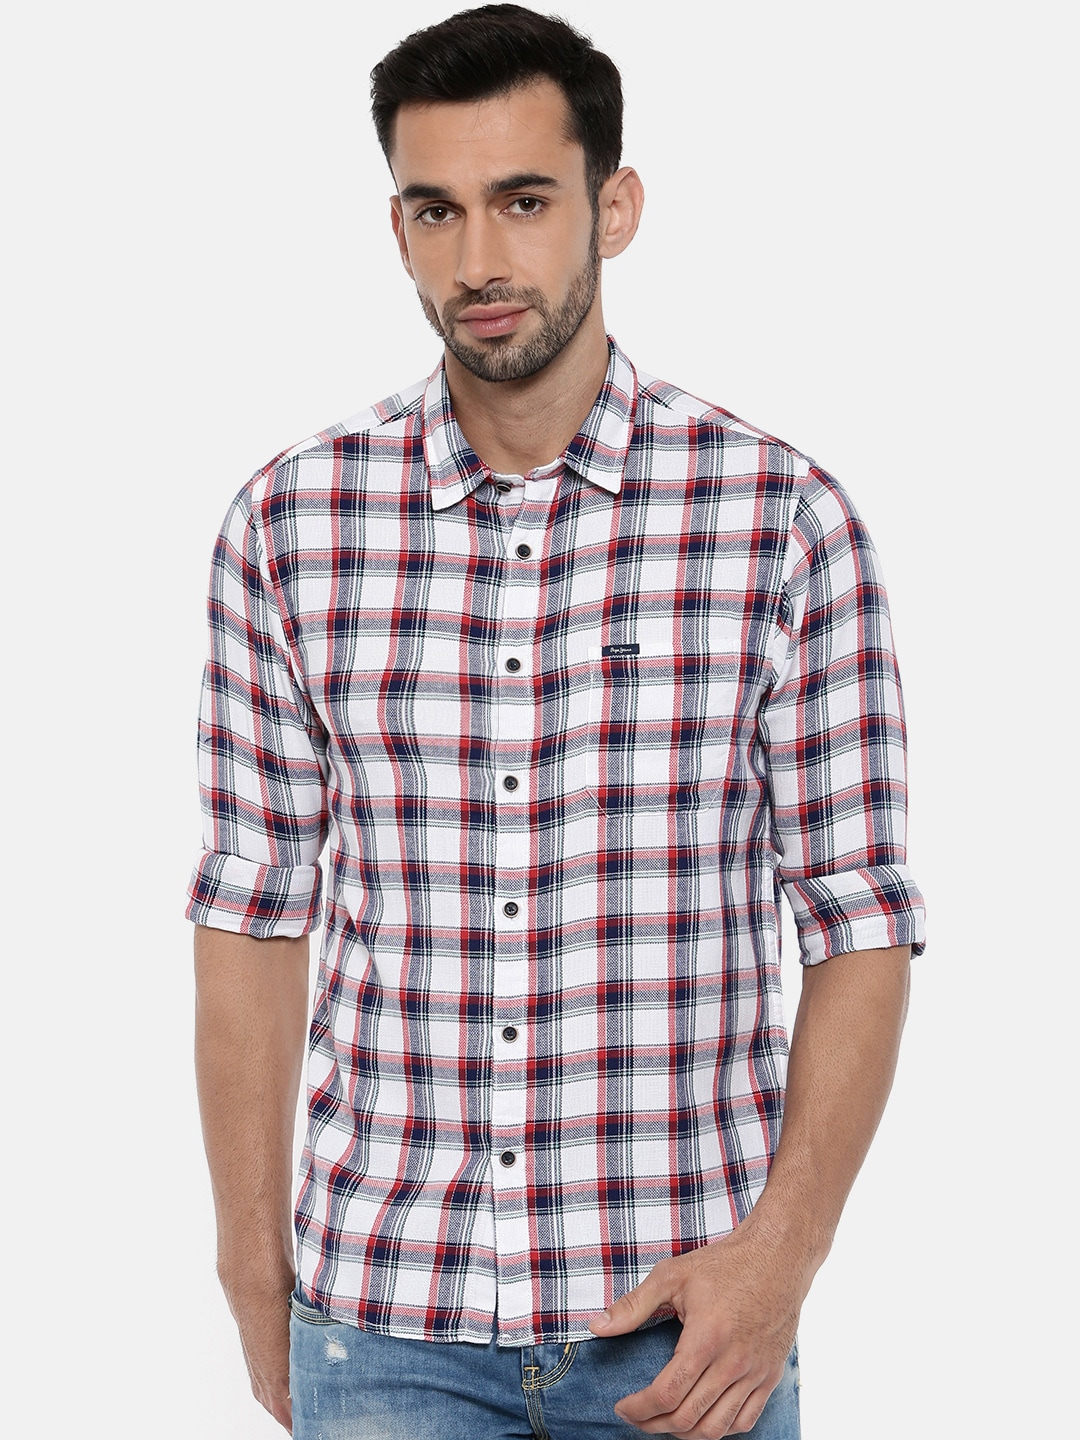 What Color Shirt To Wear With Khaki Jeans Cotswold Hire